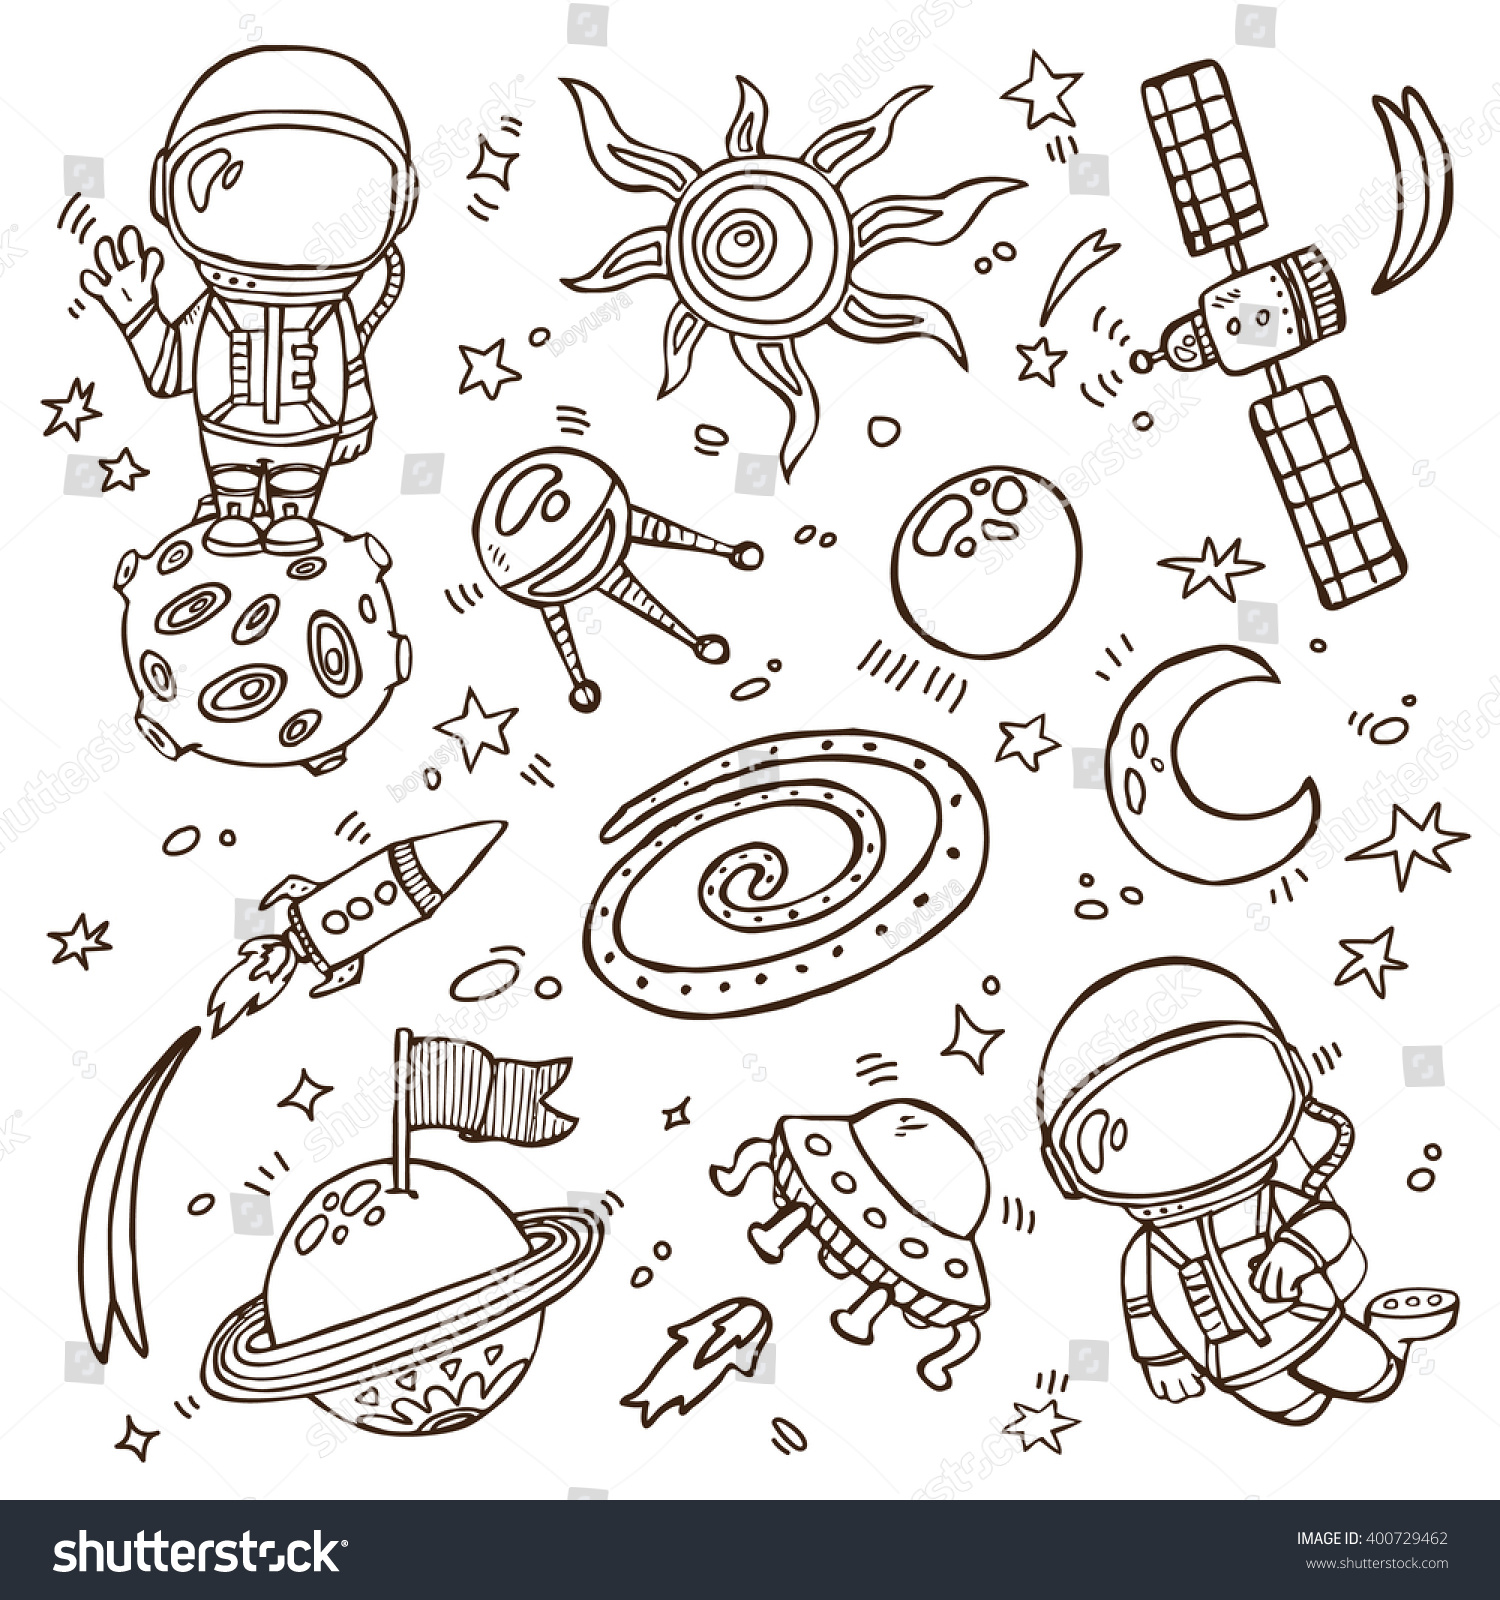 doodle space collection set vector doodle stock vector 400729462